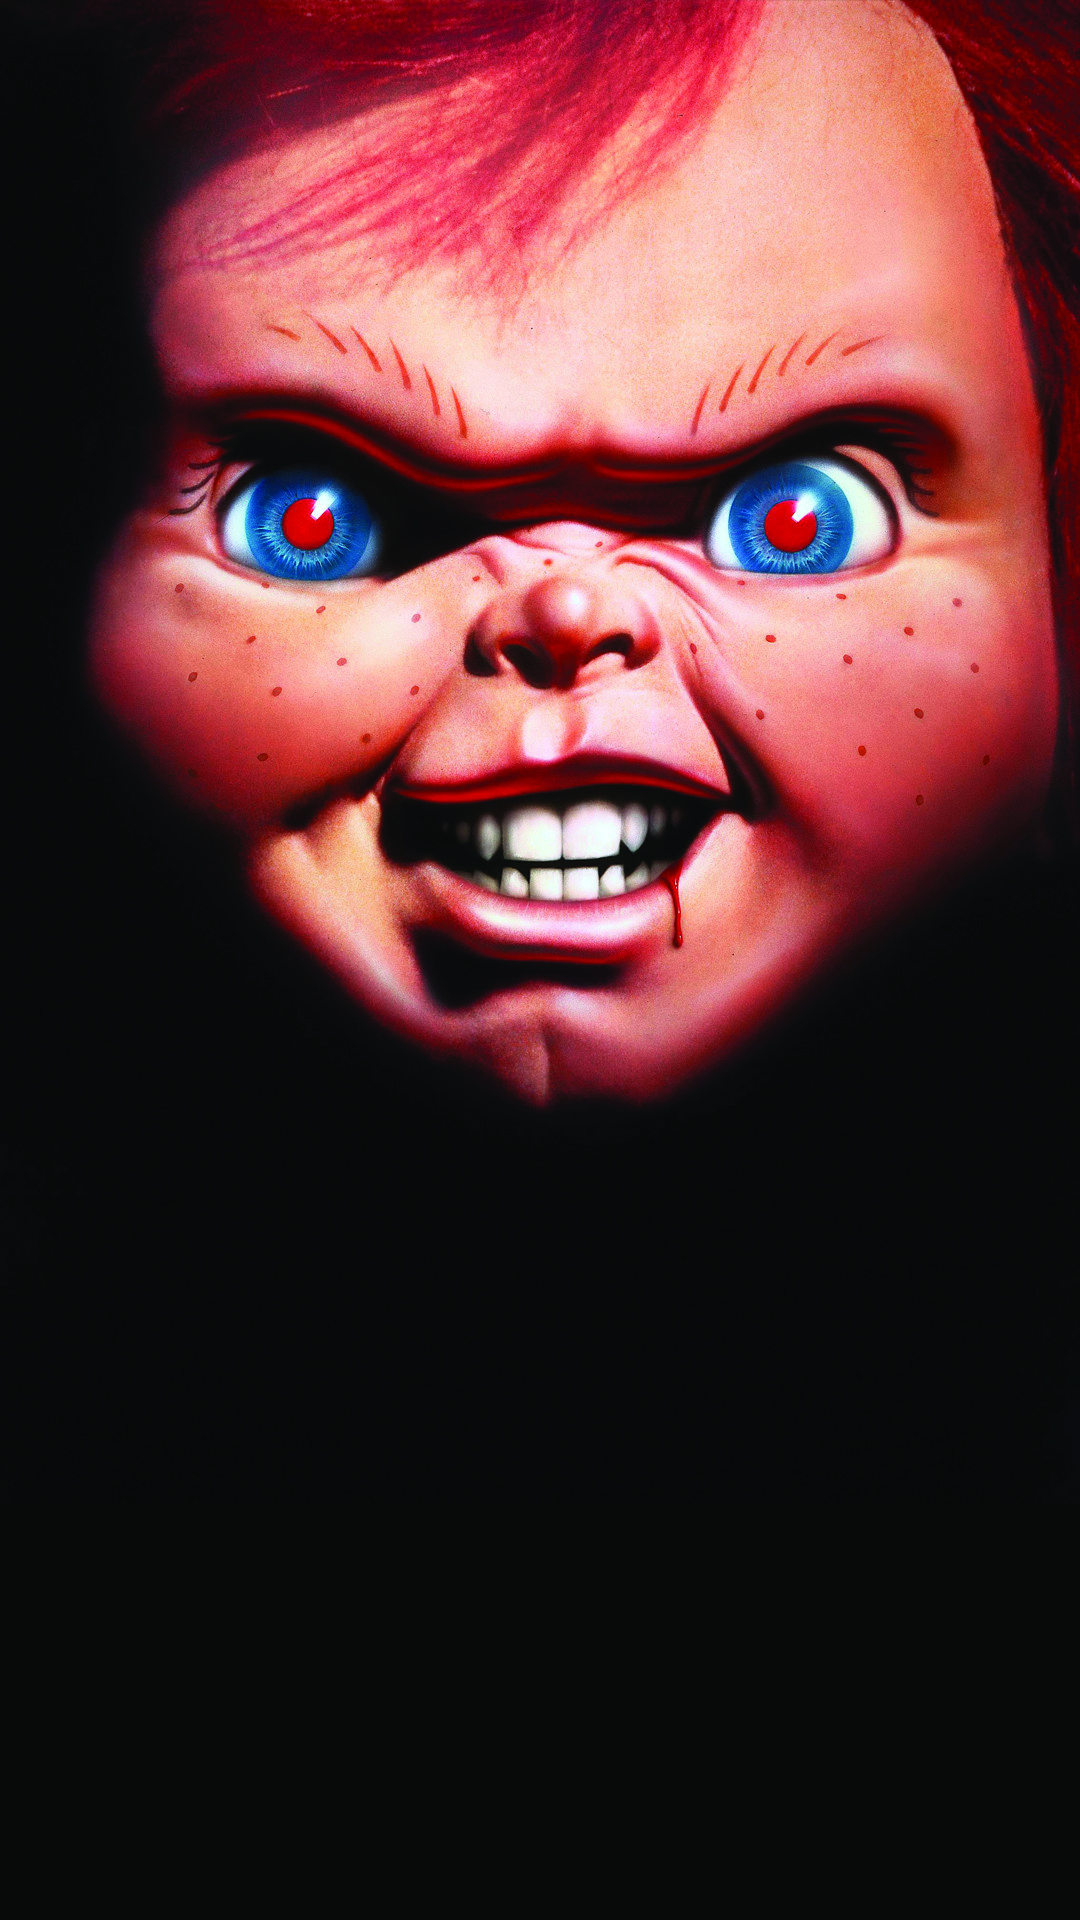 Chucky Scary Doll Android Wallpaper free download